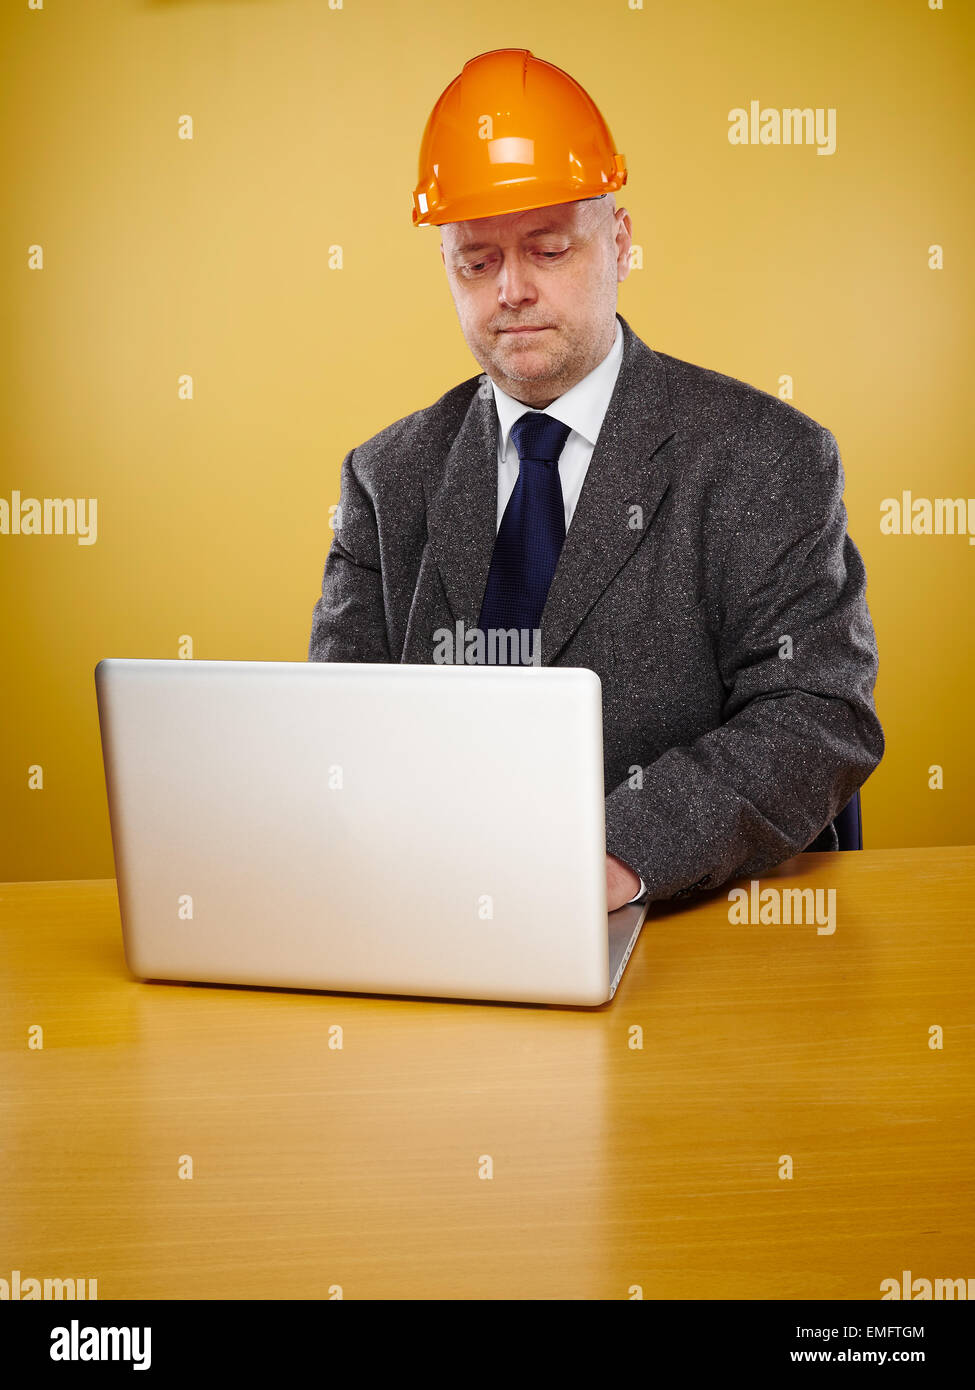 Working male engineer in office, he wearing a white shirt and tie and coat, head he wears a orange hard hat - Stock Image